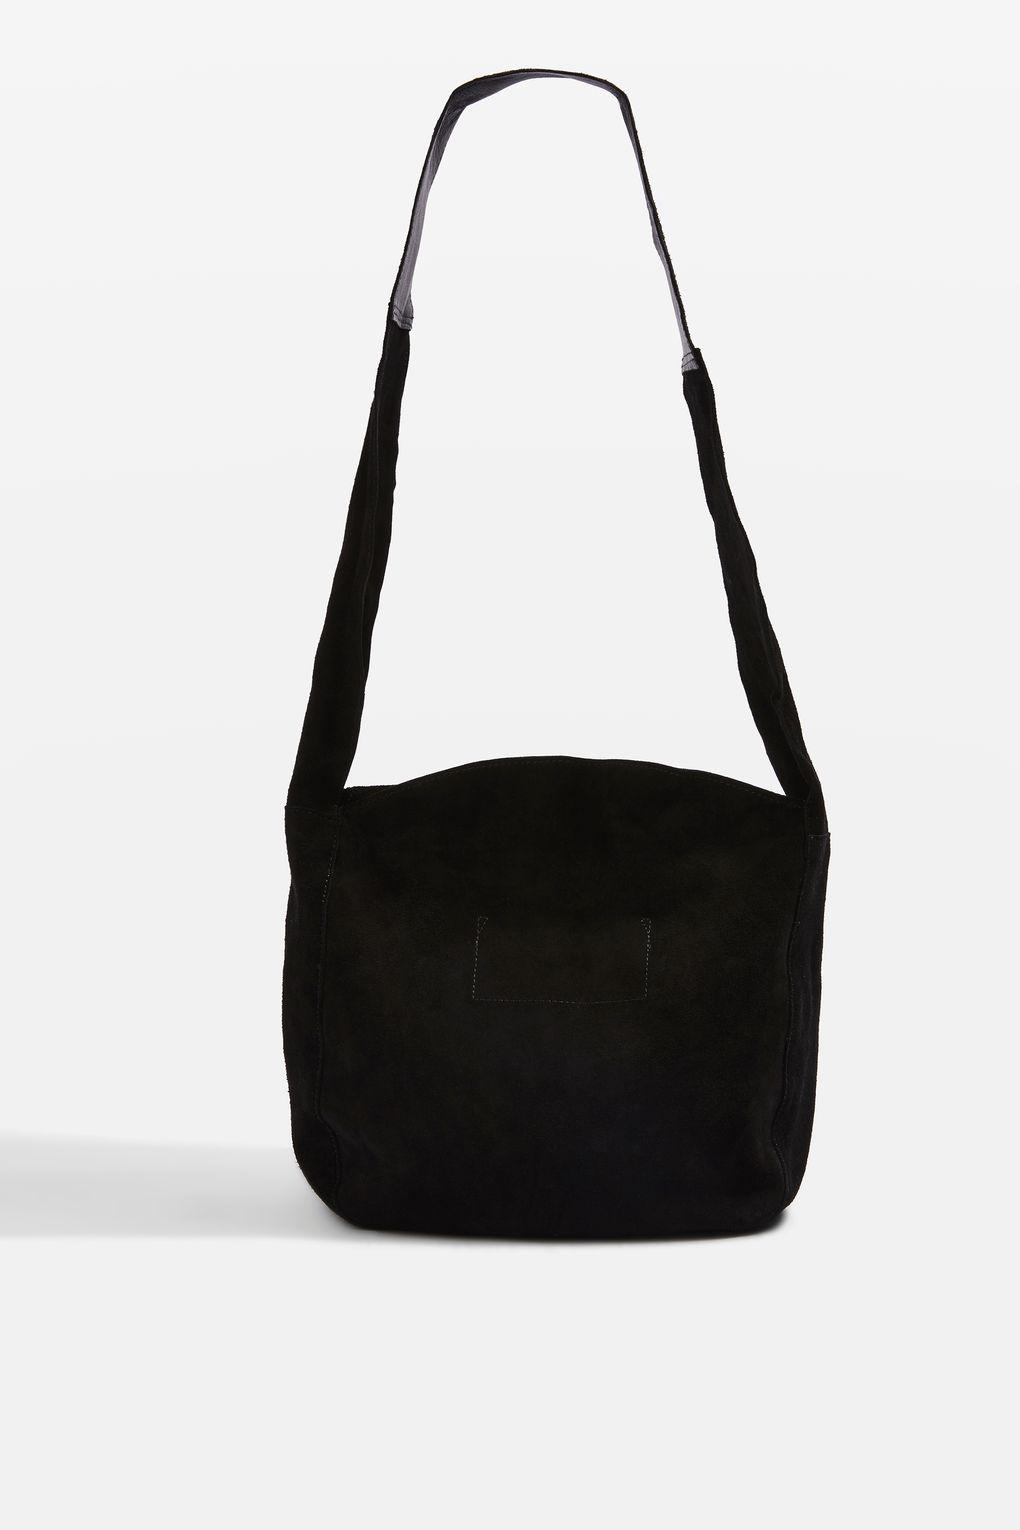 Topshop Susie Leather Slouch Mini Hobo Bag In Black Lyst